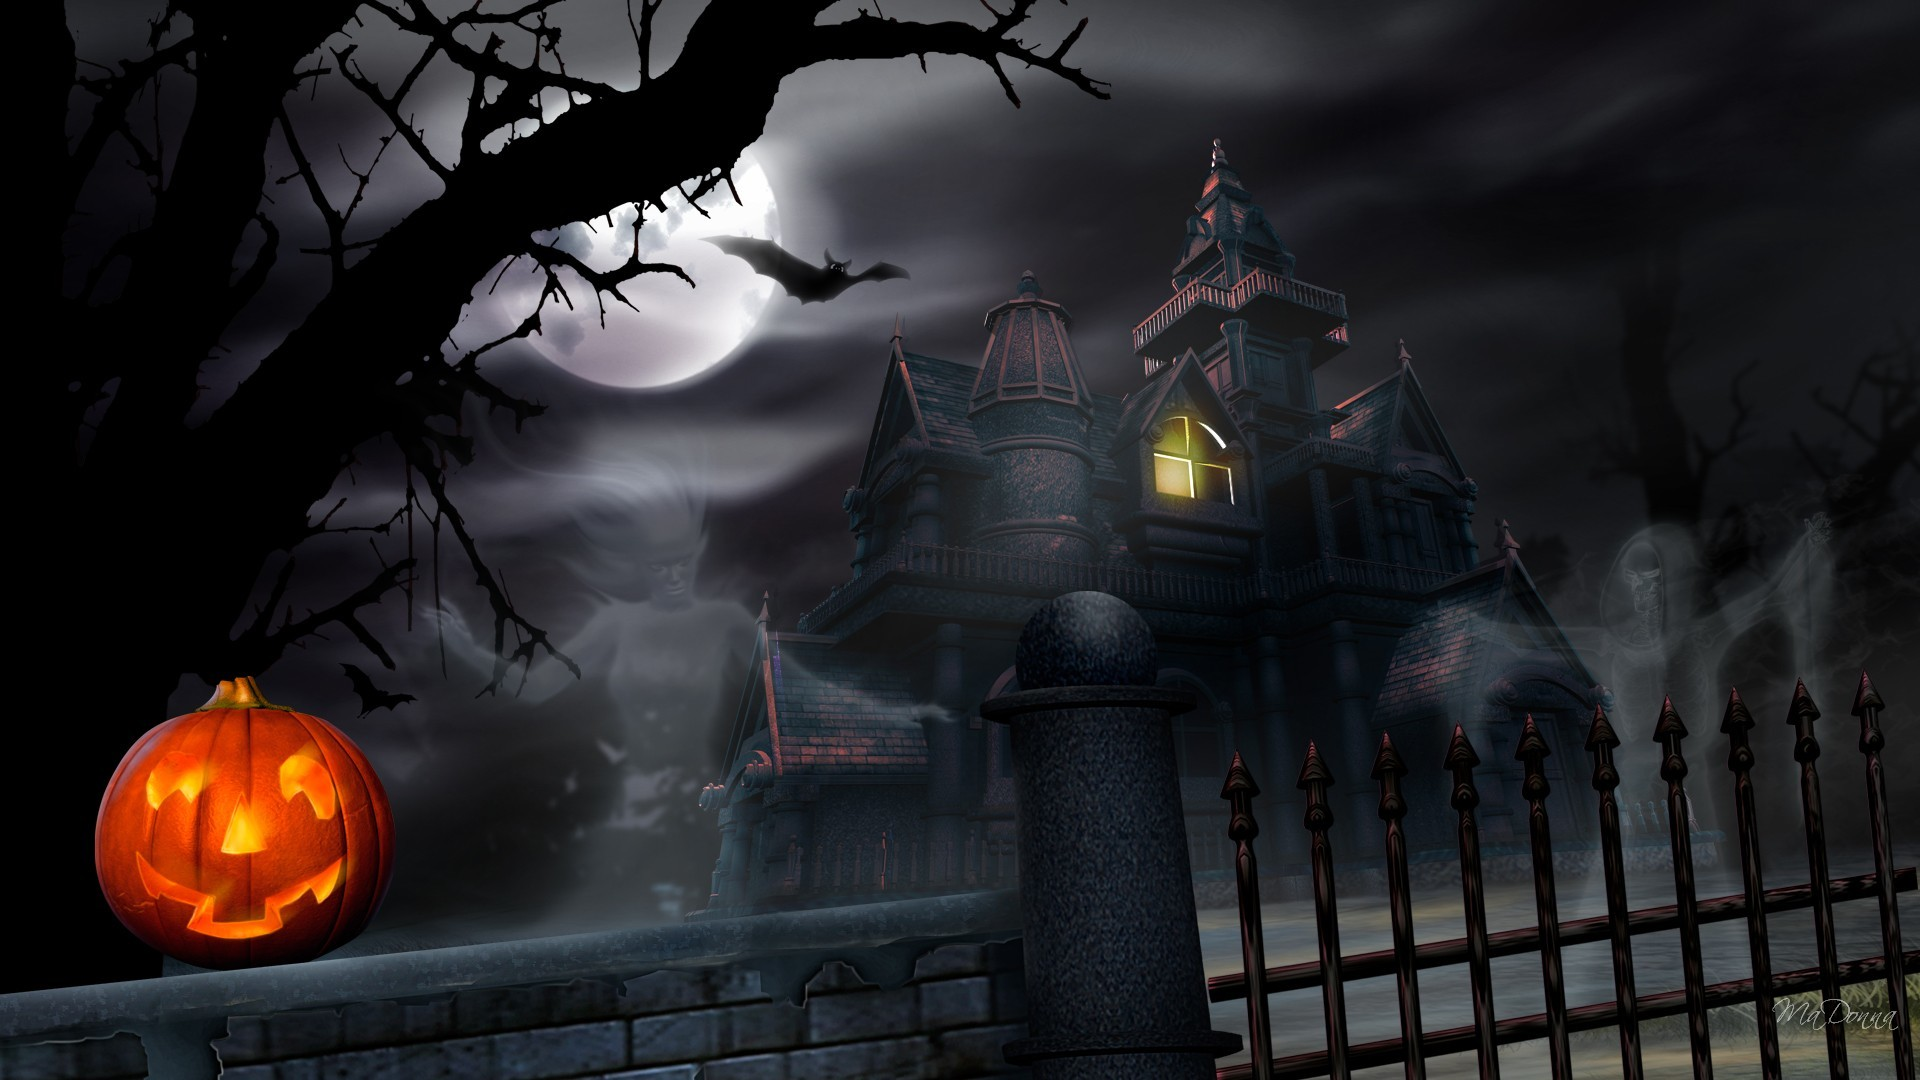 1920x1080 Free Halloween Wallpapers Phone Â« Long Wallpapers. Free Halloween Wallpapers  Phone Long Wallpapers